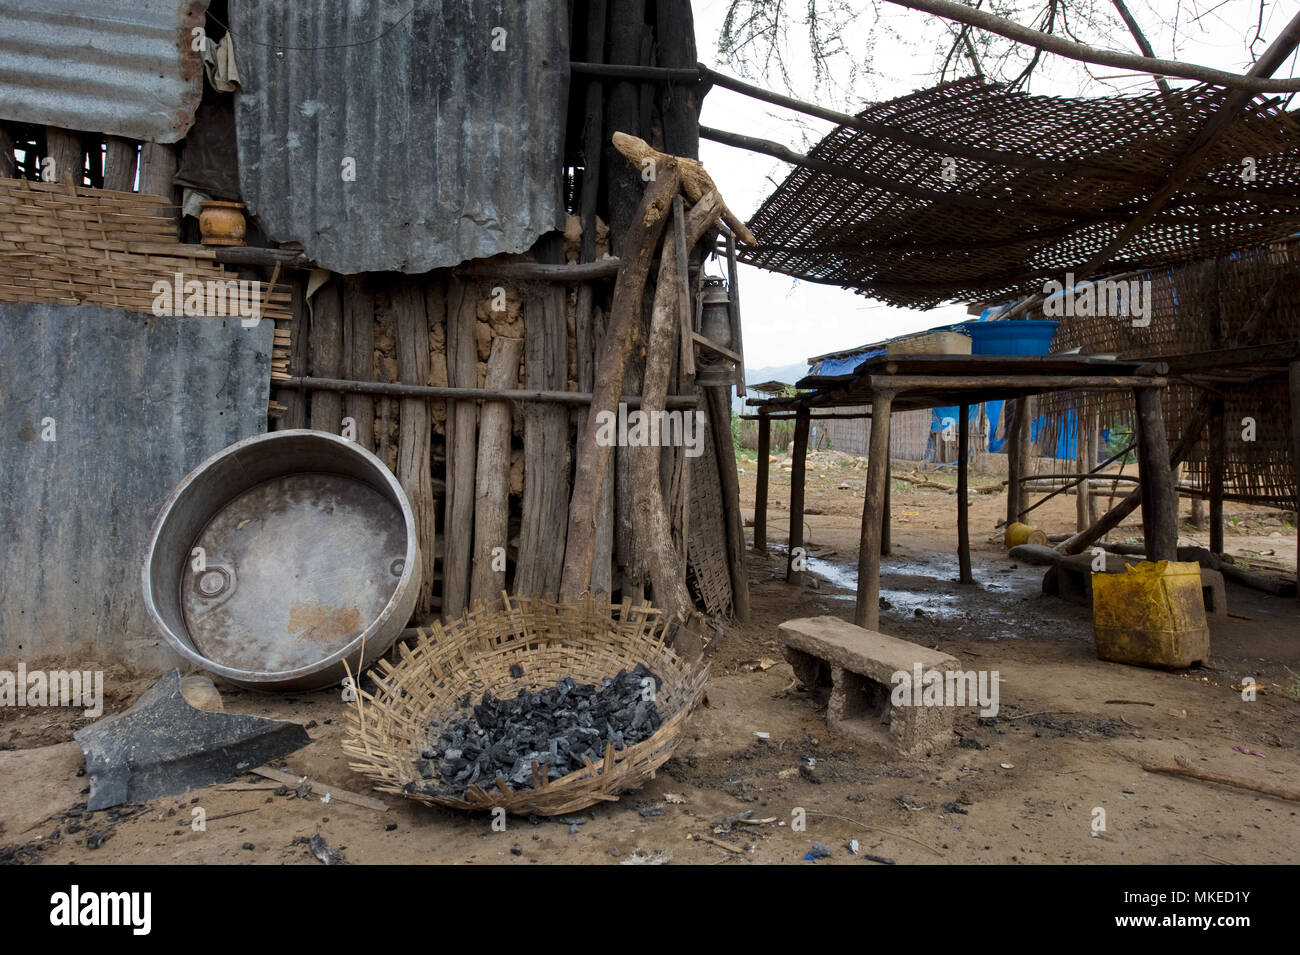 Yard Ethiopian village house, hedge of wooden sticks, awnings, scattered basins, cans, trash. - Stock Image